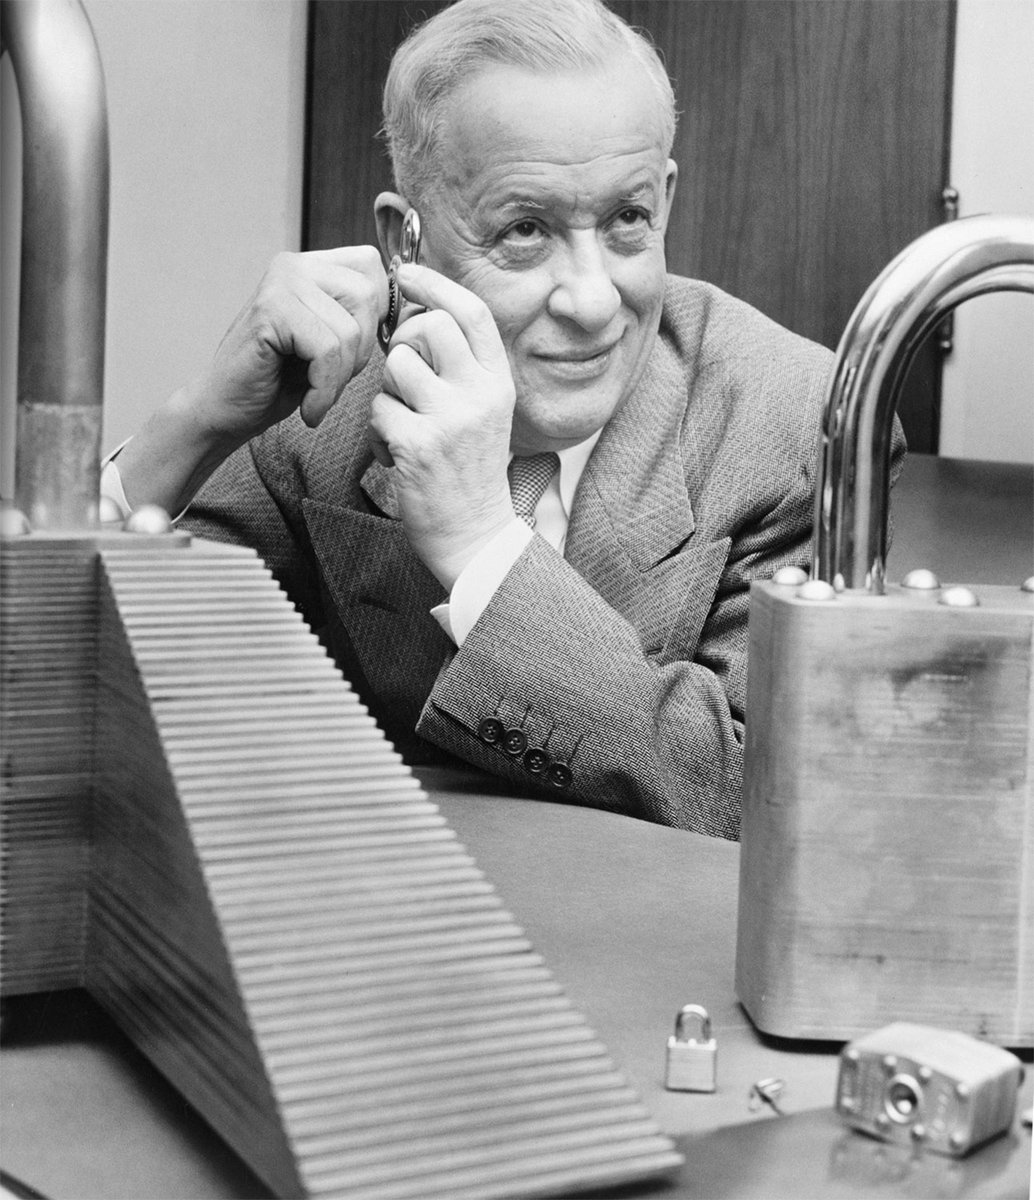 #TodayInEngineeringHistory Harry Soref, who later founded GSC customer @MasterLockUS, received a patent for a laminated padlock in 1924. <br>http://pic.twitter.com/JqW4JpMKt5